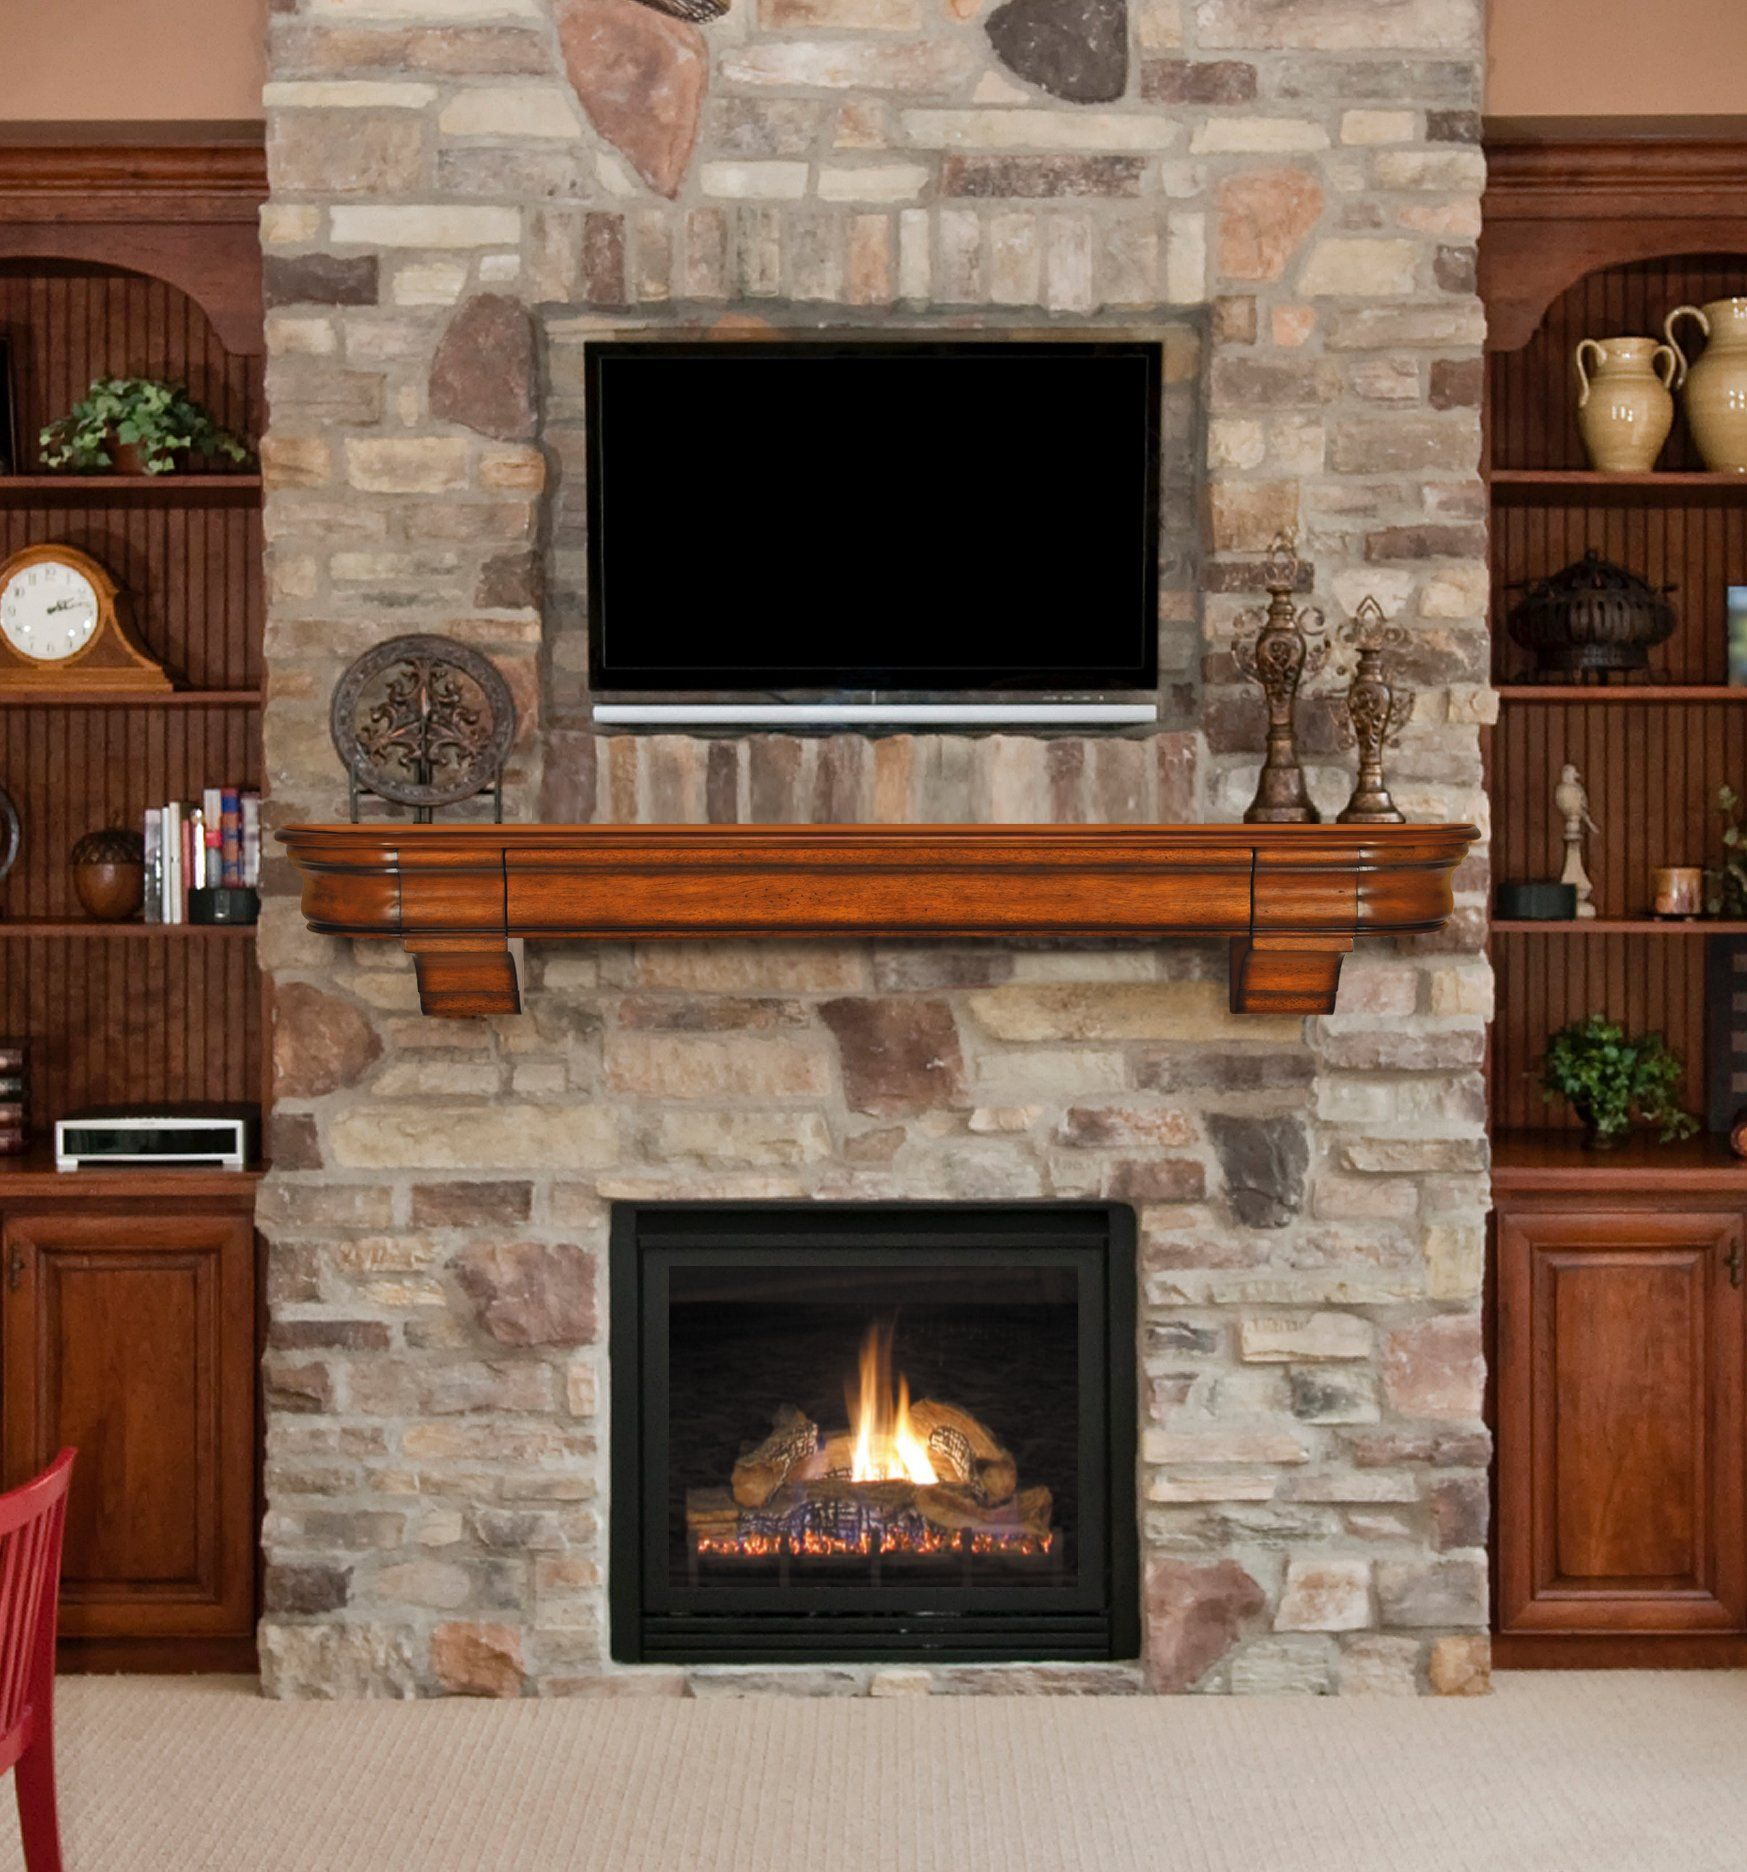 Fireplace Wall Designs fireplace wall Living Room Designs With Fireplace And Tv Fireplace Mantels Designs For Fireplaces